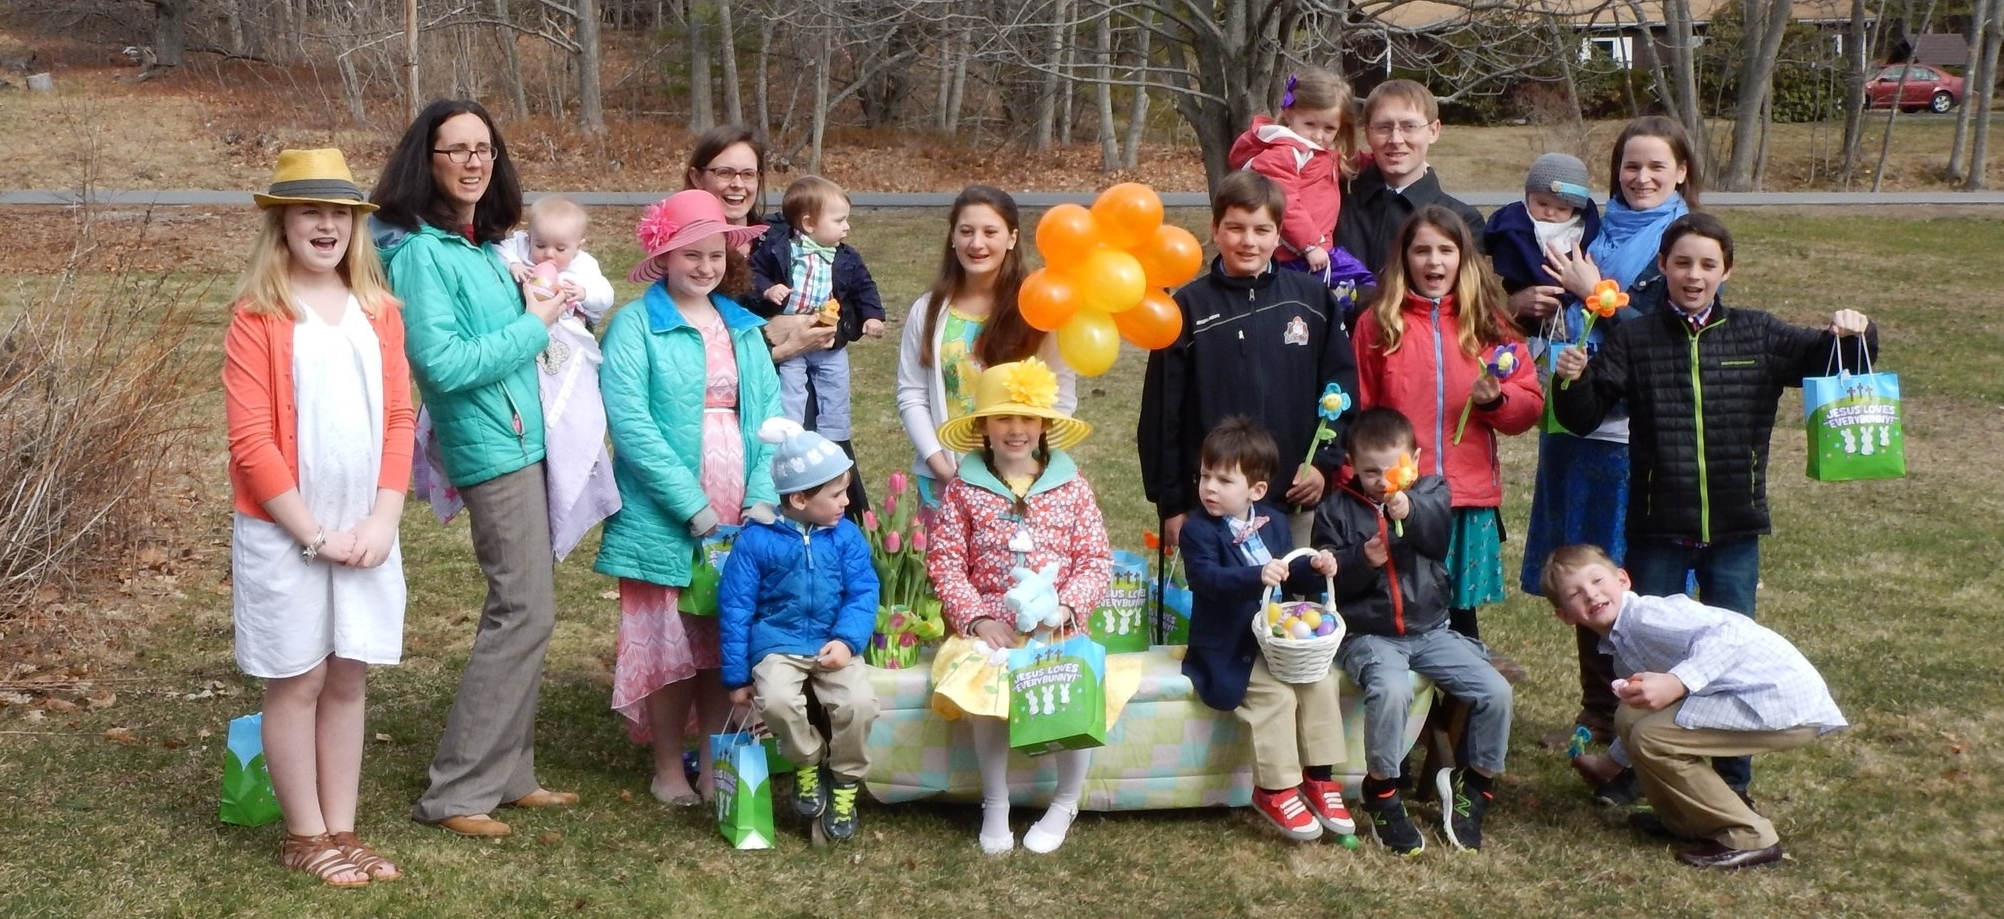 Our Children's Easter Egg Hunt will be held on Easter Sunday April 21, 2019 directly after worship at 10:30am. All are welcome!